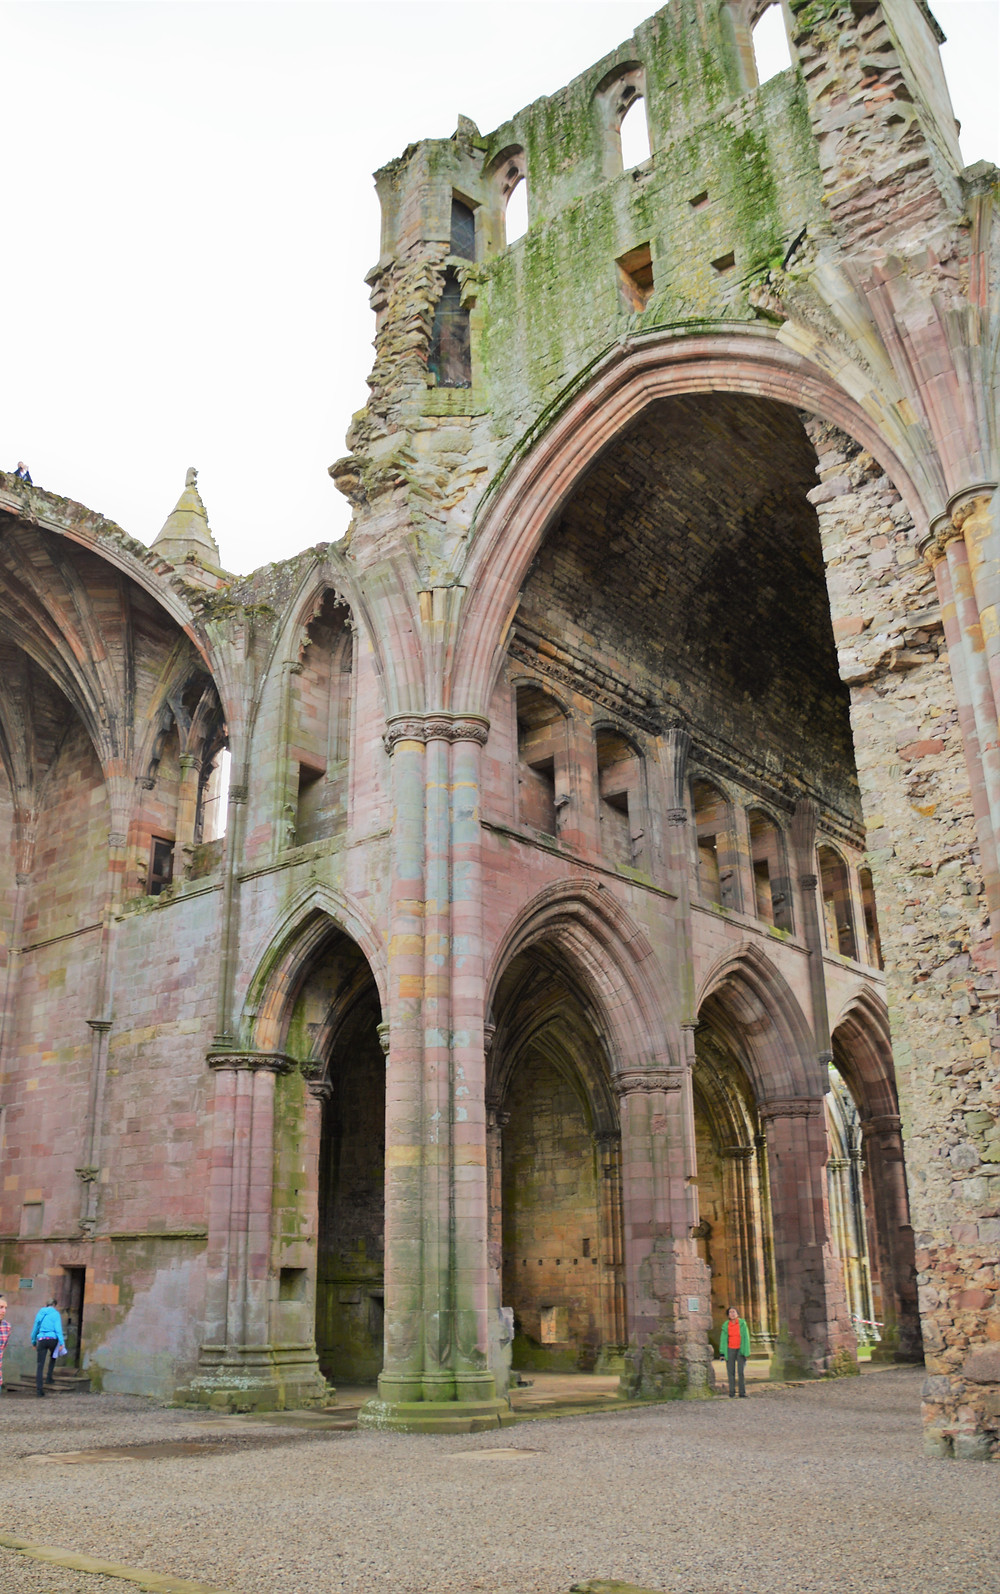 Massive 84 foot tall pillars supported the roof of Melrose Abbey in the Border Region of Southern